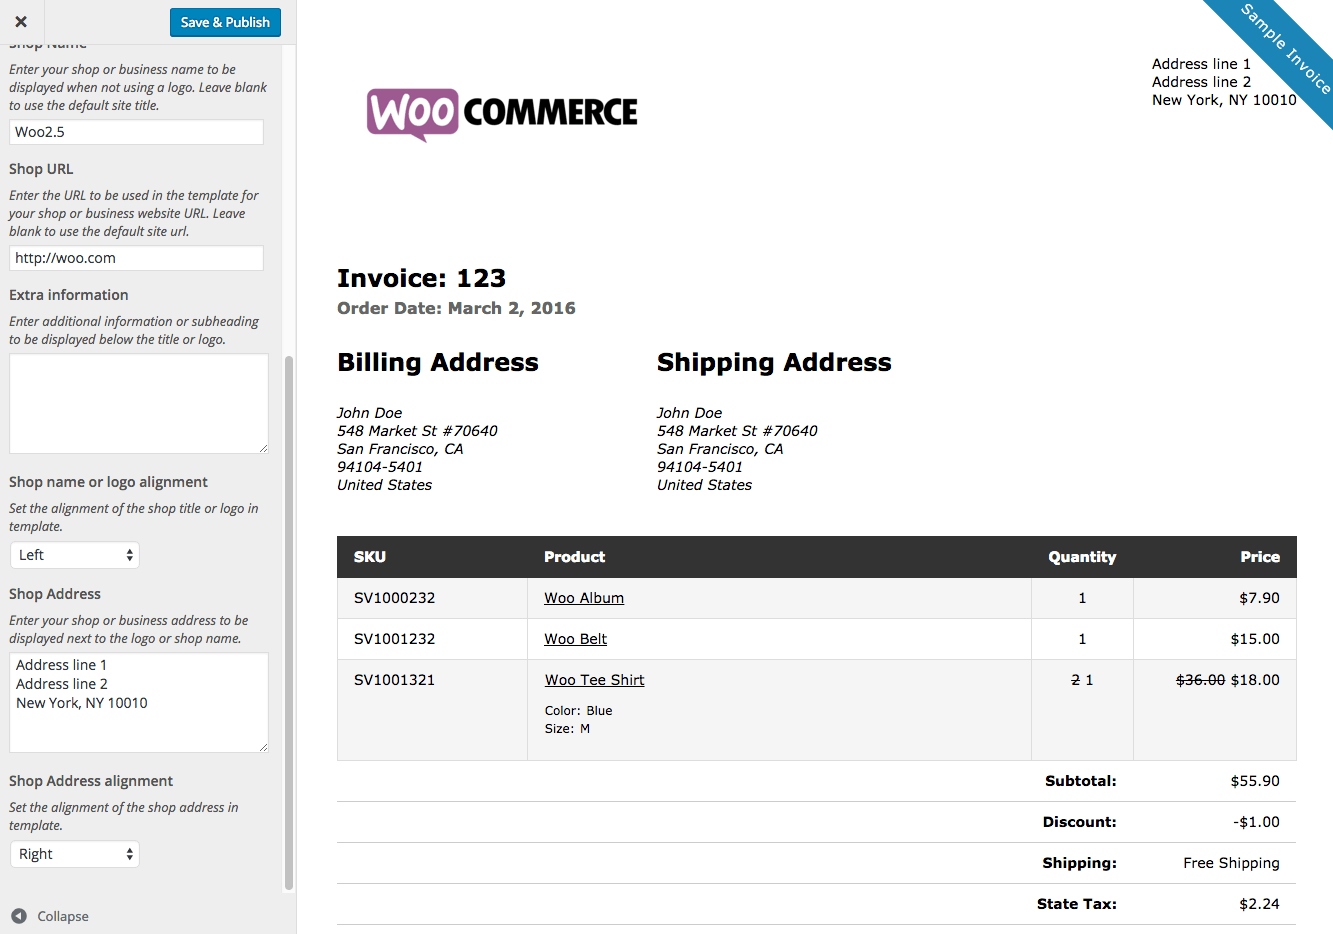 WooCommerce Print Invoices Packing Lists WooCommerce - Invoice for services rendered template free online shoe store